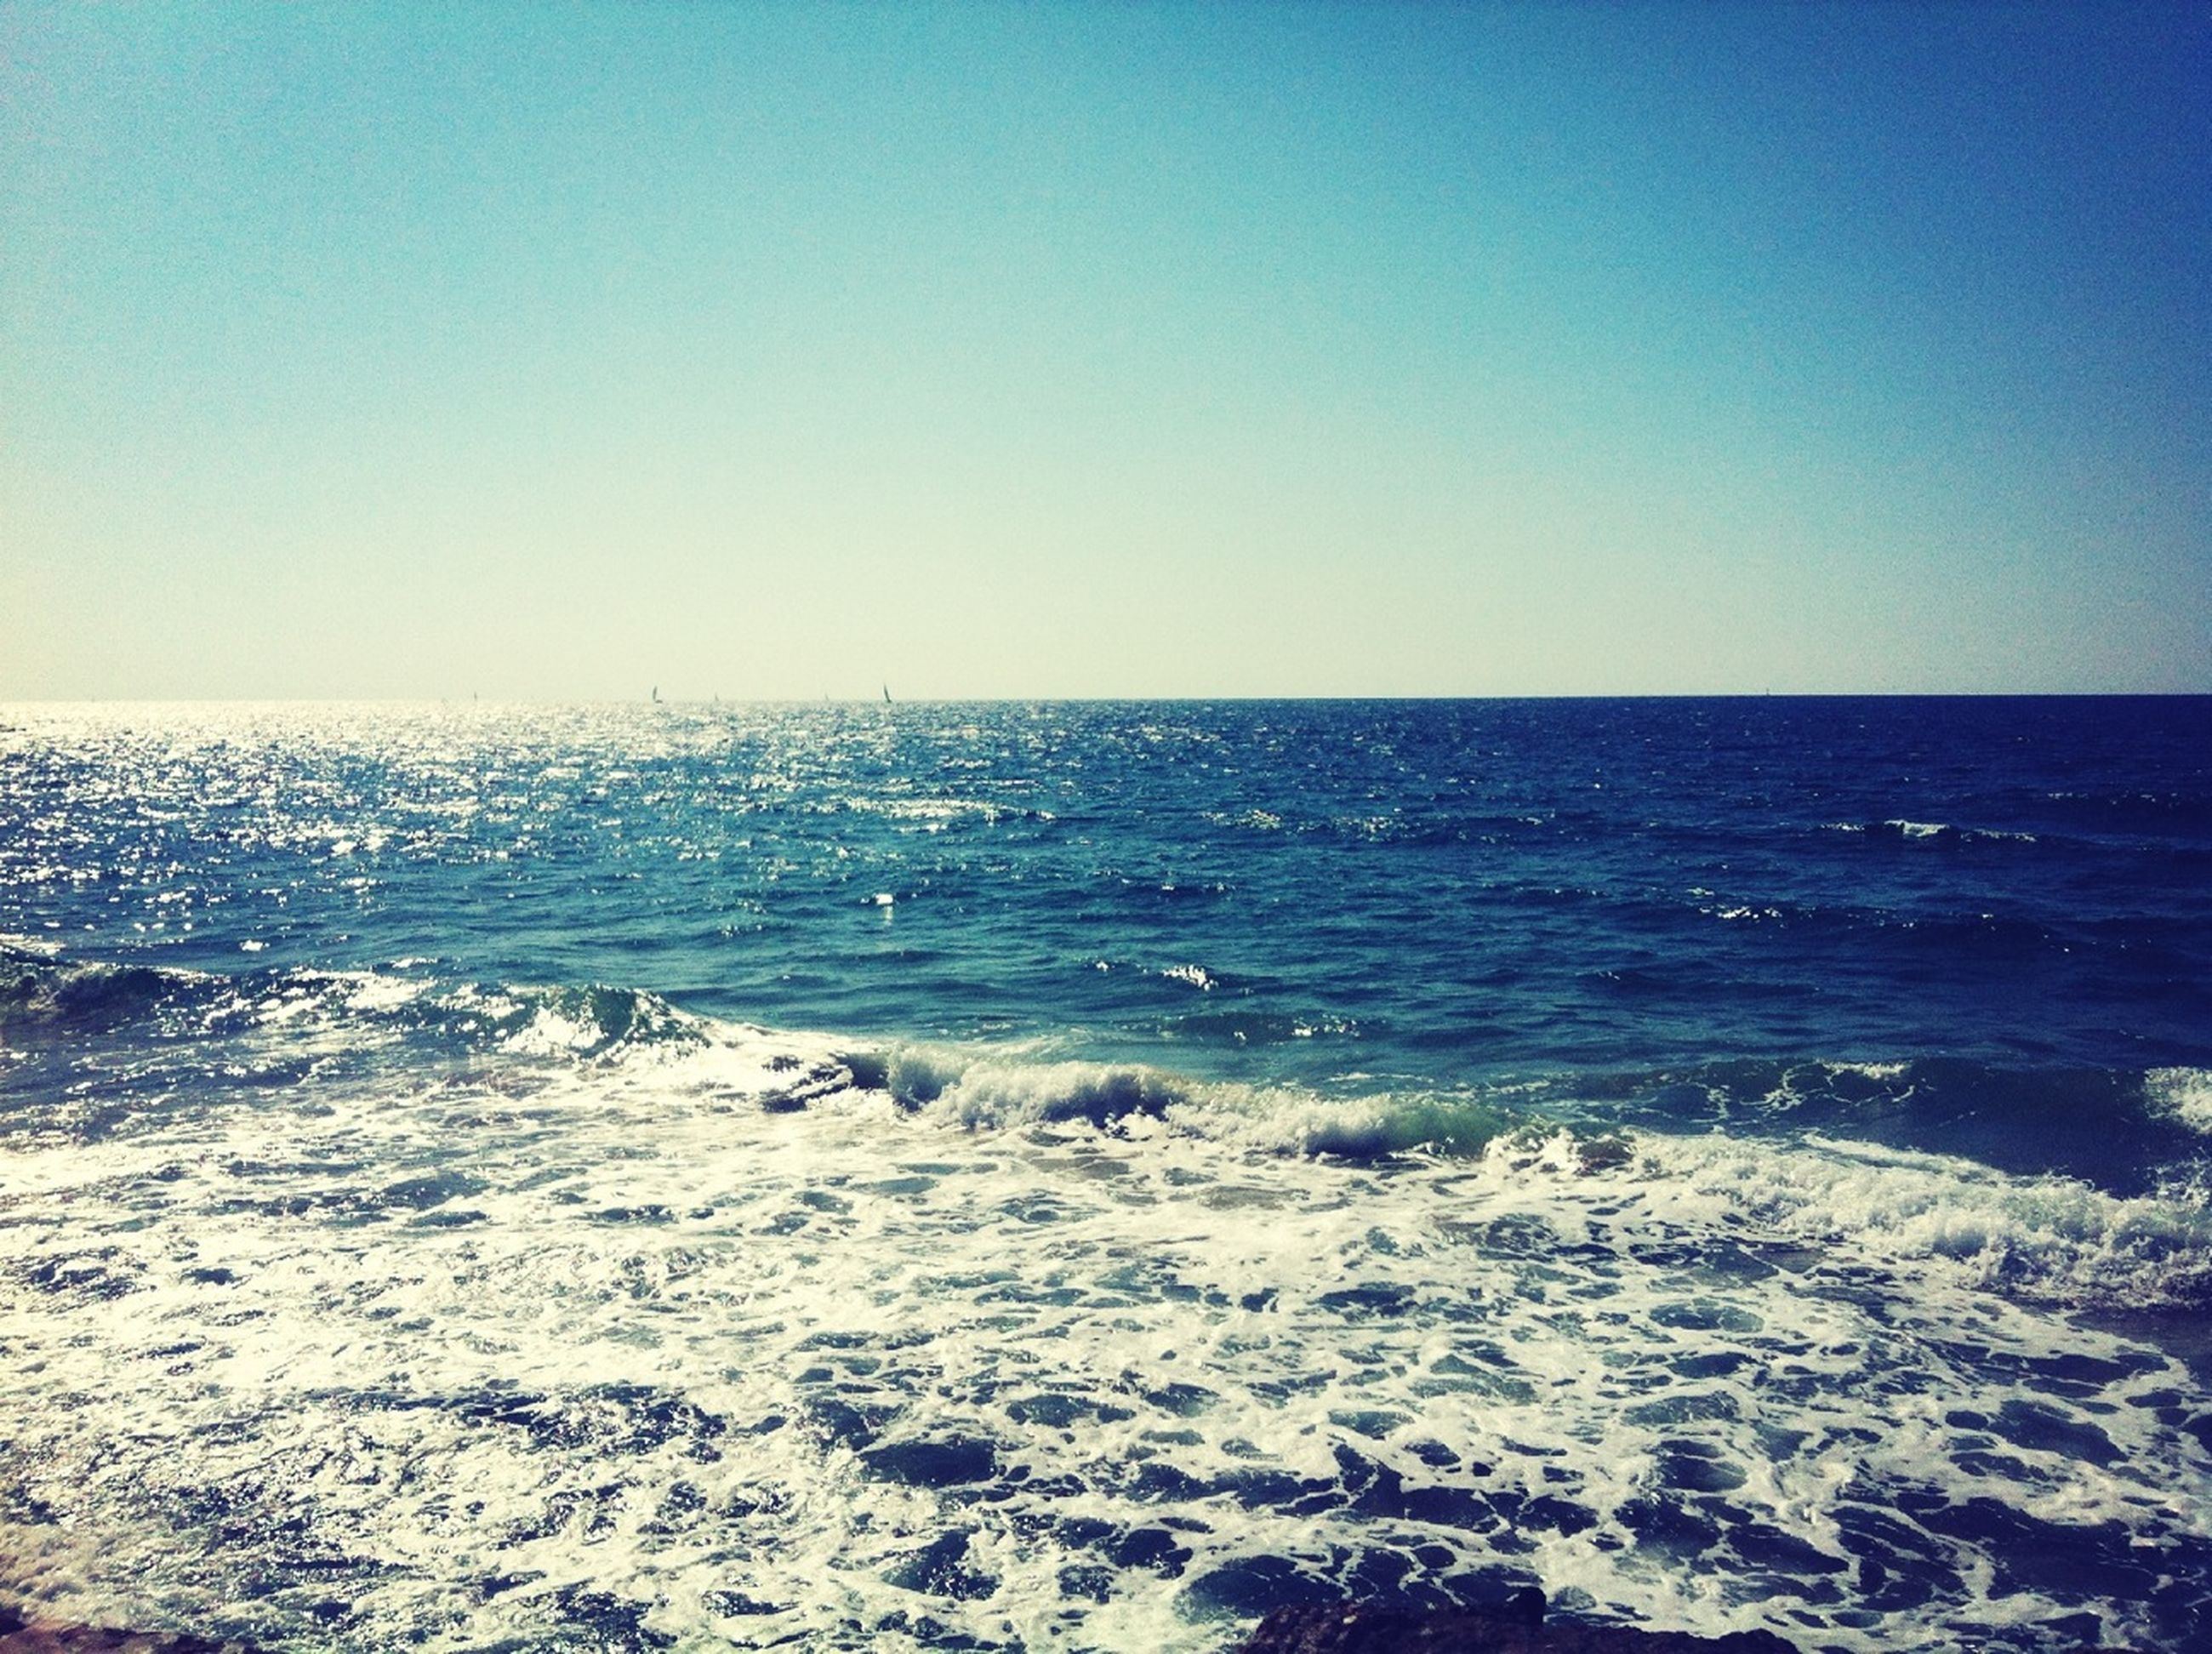 sea, horizon over water, water, clear sky, copy space, scenics, tranquil scene, beauty in nature, tranquility, beach, blue, nature, shore, idyllic, wave, seascape, remote, outdoors, surf, non-urban scene